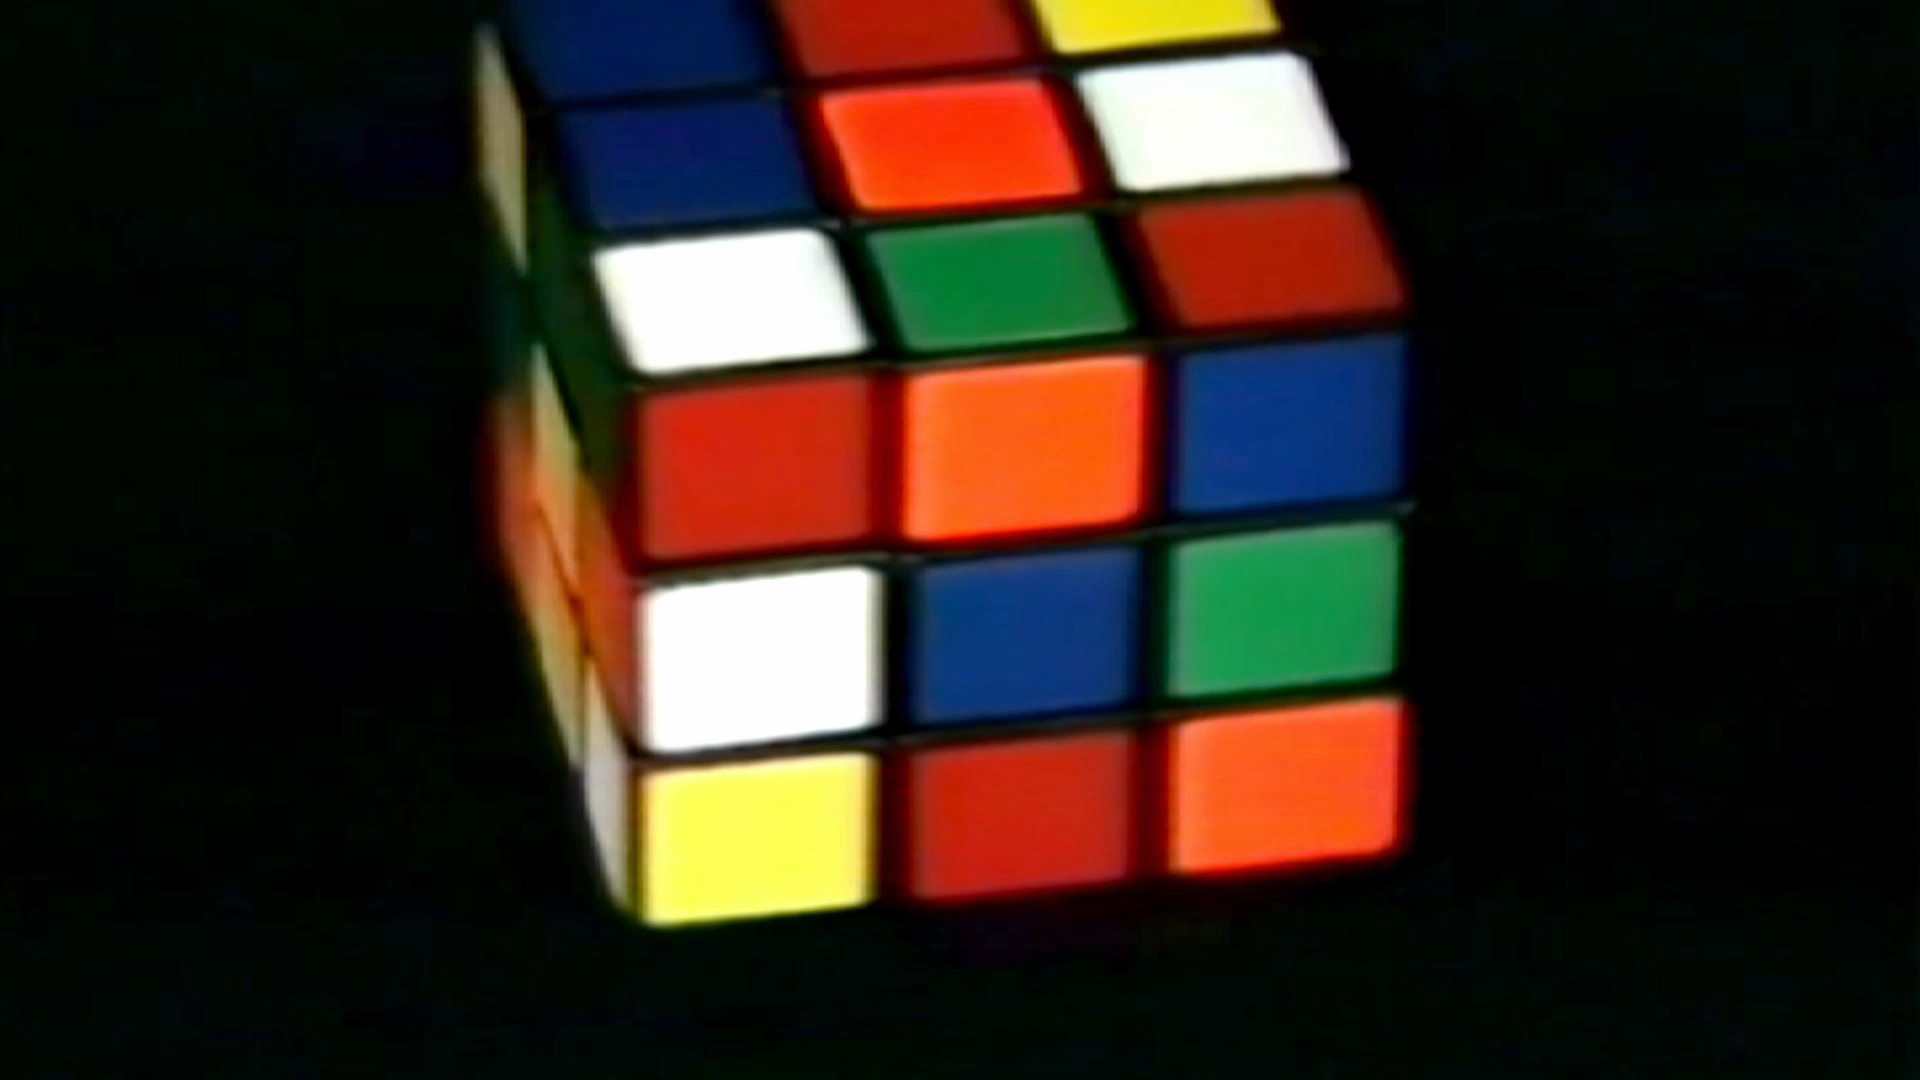 Solving the Rubik's Cube – The '80s: The Decade That Made Us Video –  National Geographic Channel